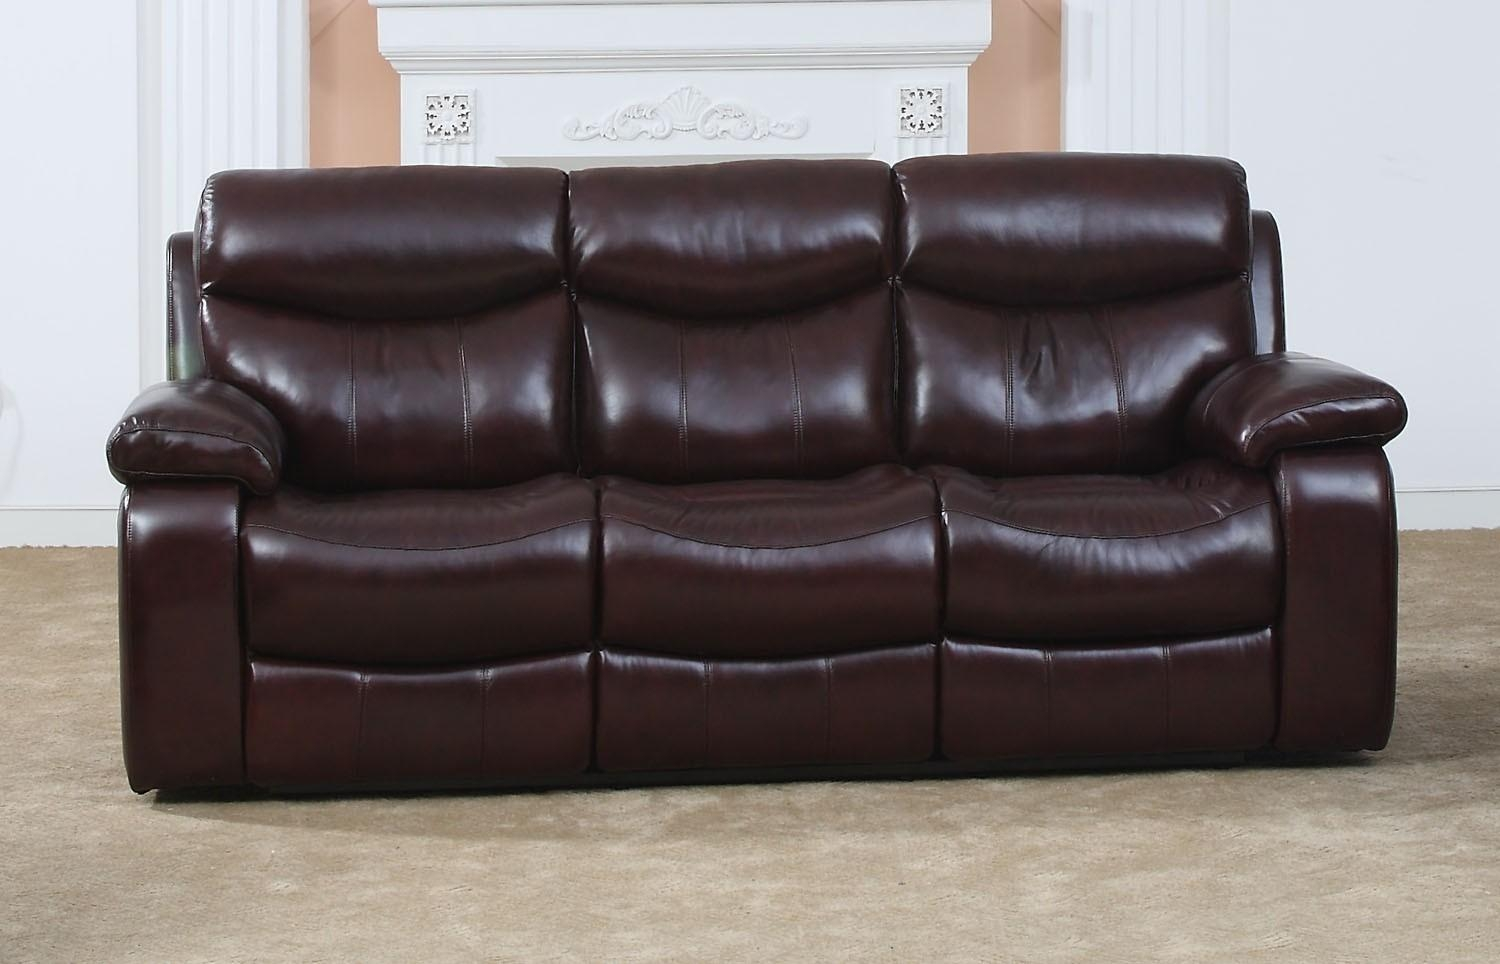 Sofa : Leather Sofas Orange County Excellent Home Design Pertaining To Sofas Orange County (View 12 of 20)